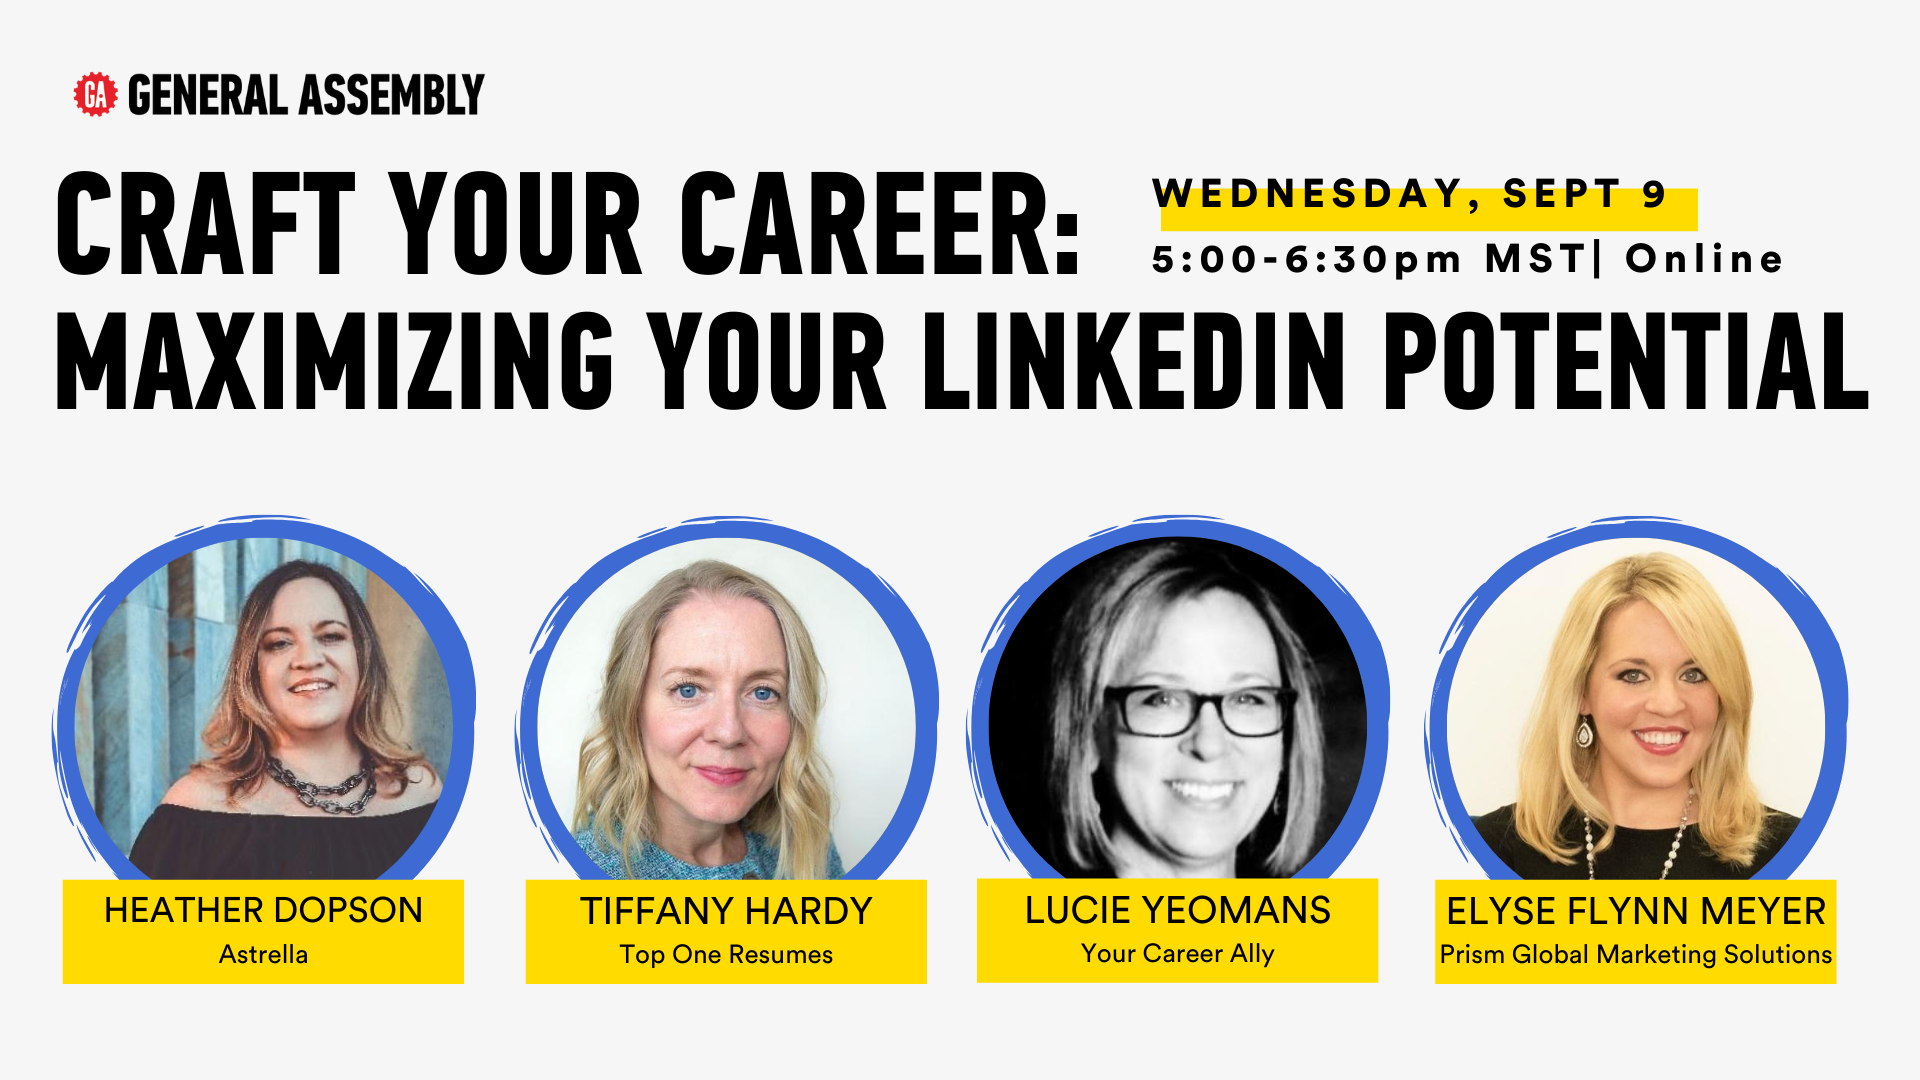 Craft Your Career: Maximizing Your LinkedIn Potential